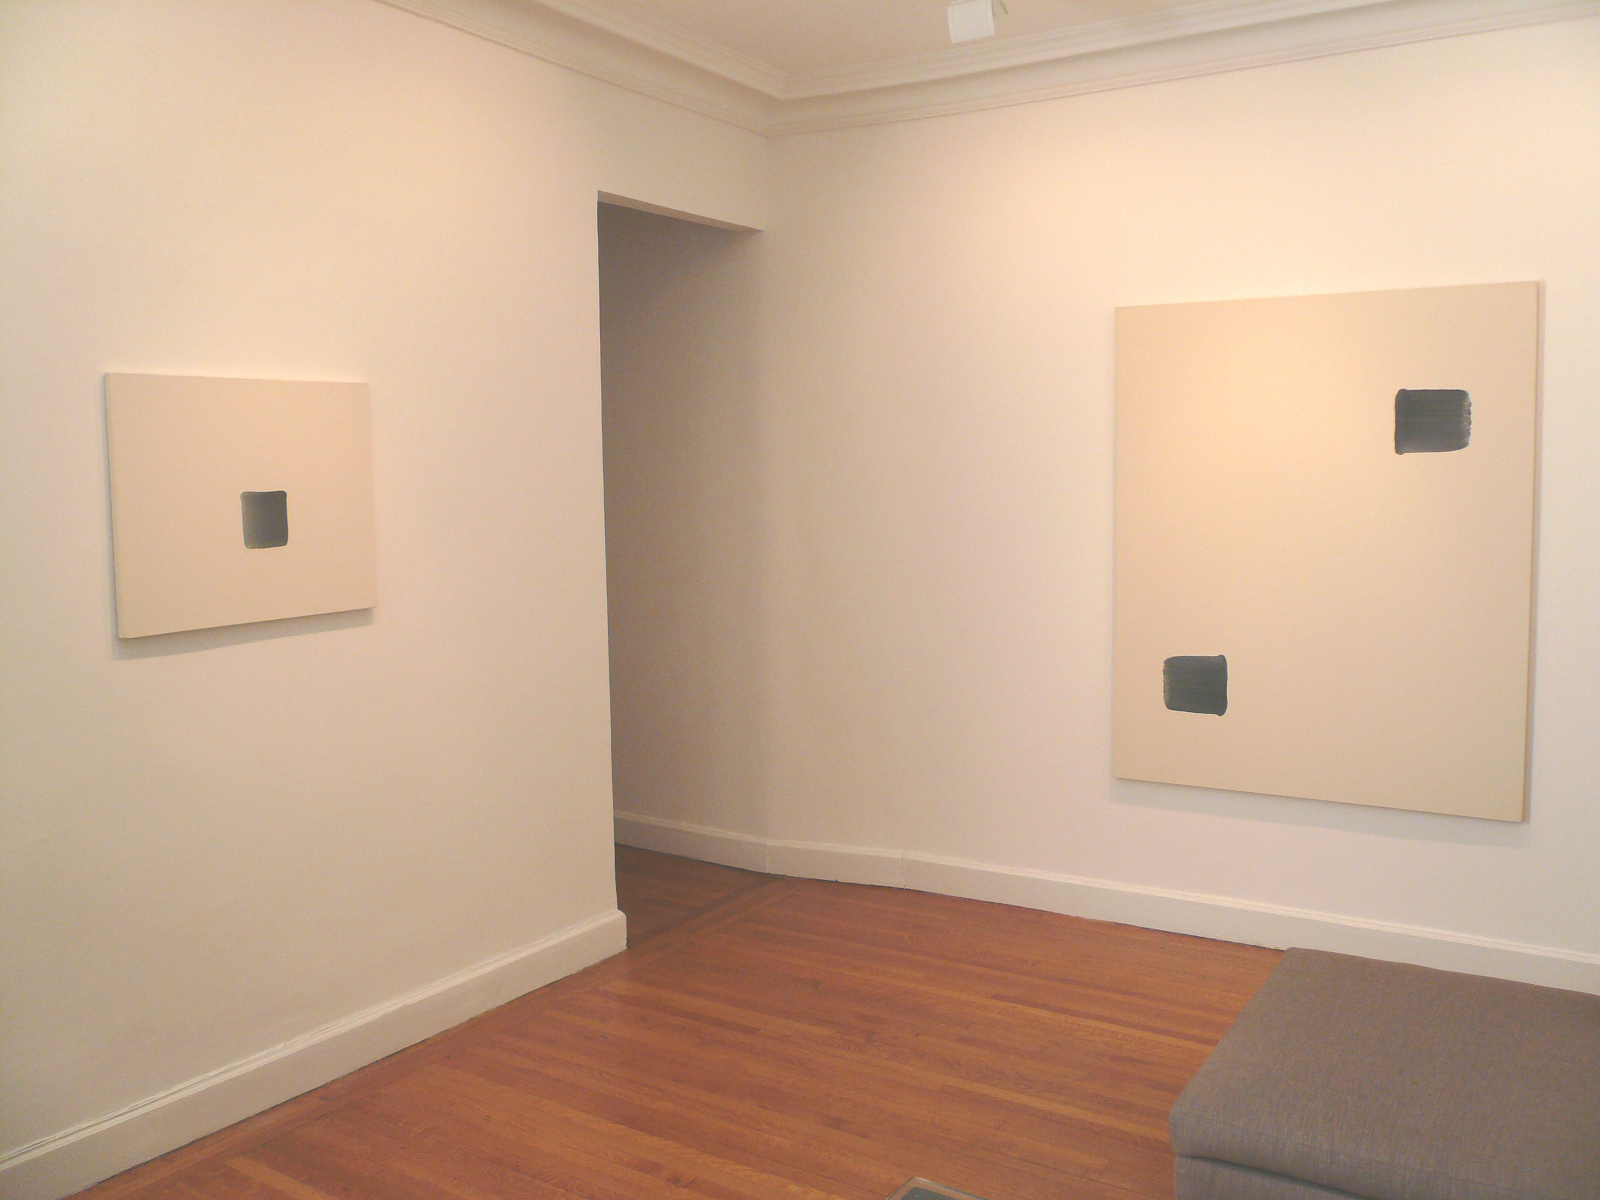 Photograph 1 from Lee Ufan: Correspondence Paintings 1995-2005 exhibition.